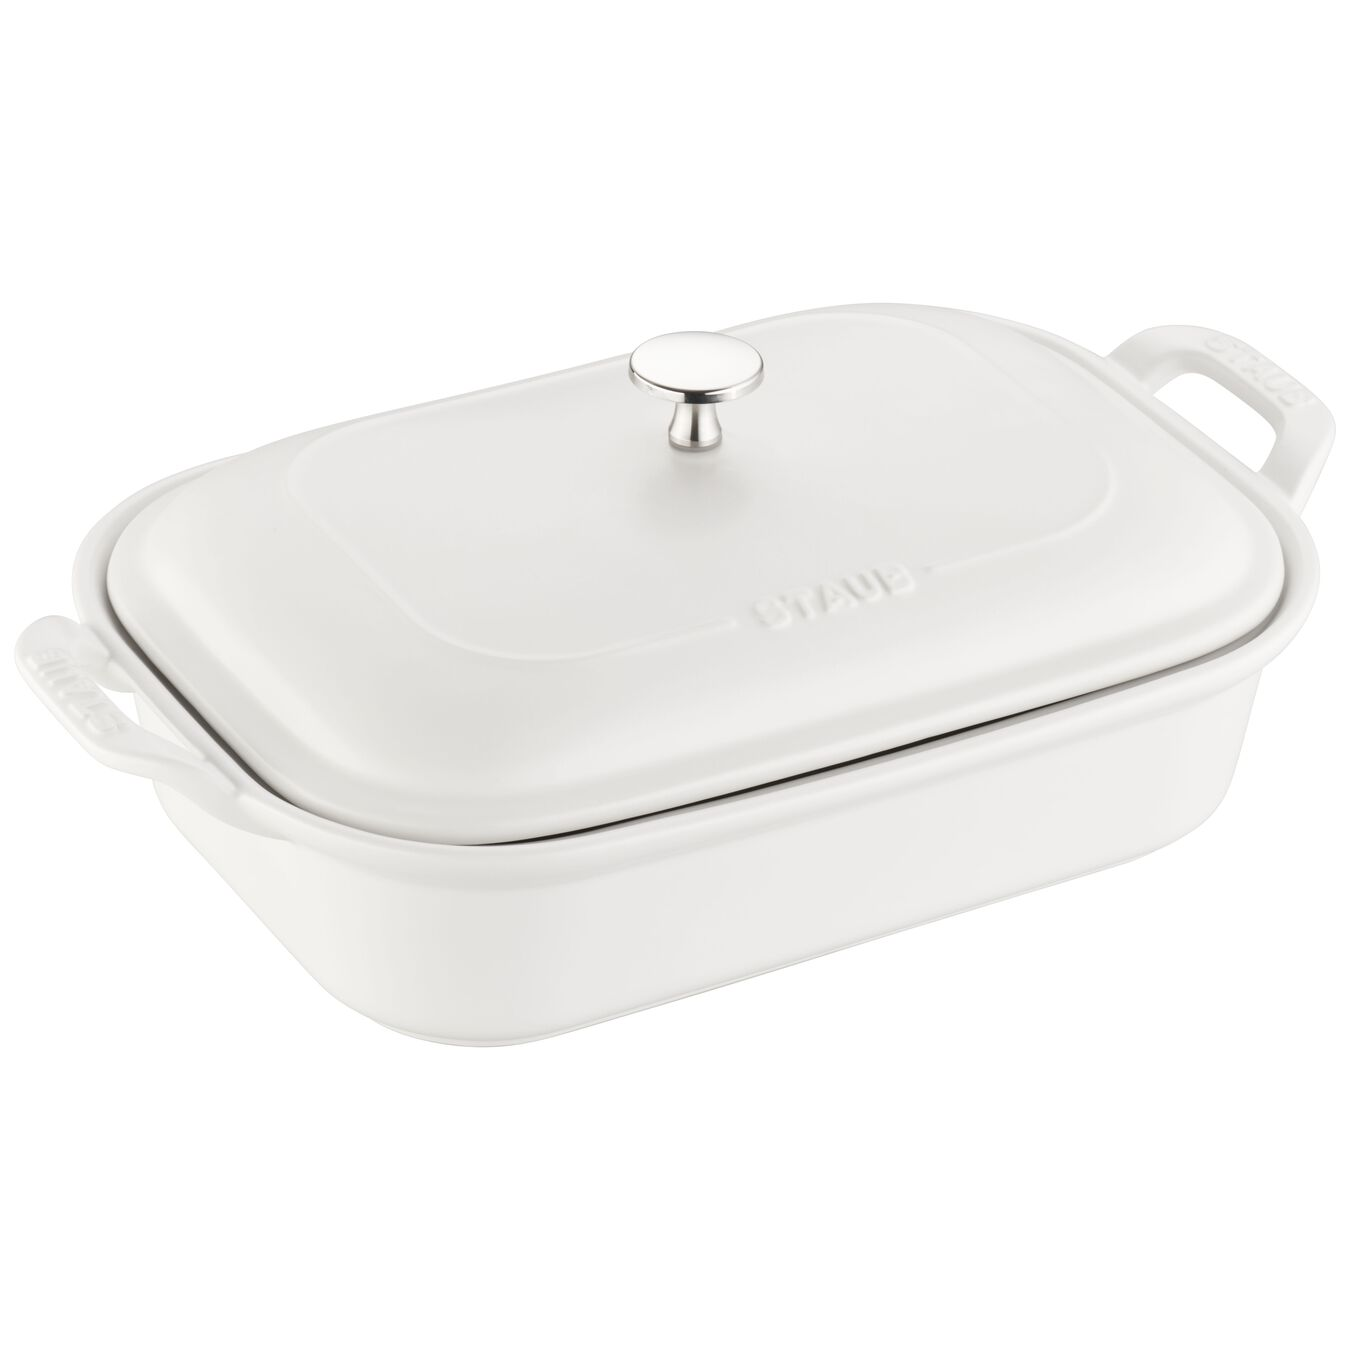 12-inch x 8-inch Rectangular Covered Baking Dish - Matte White,,large 1